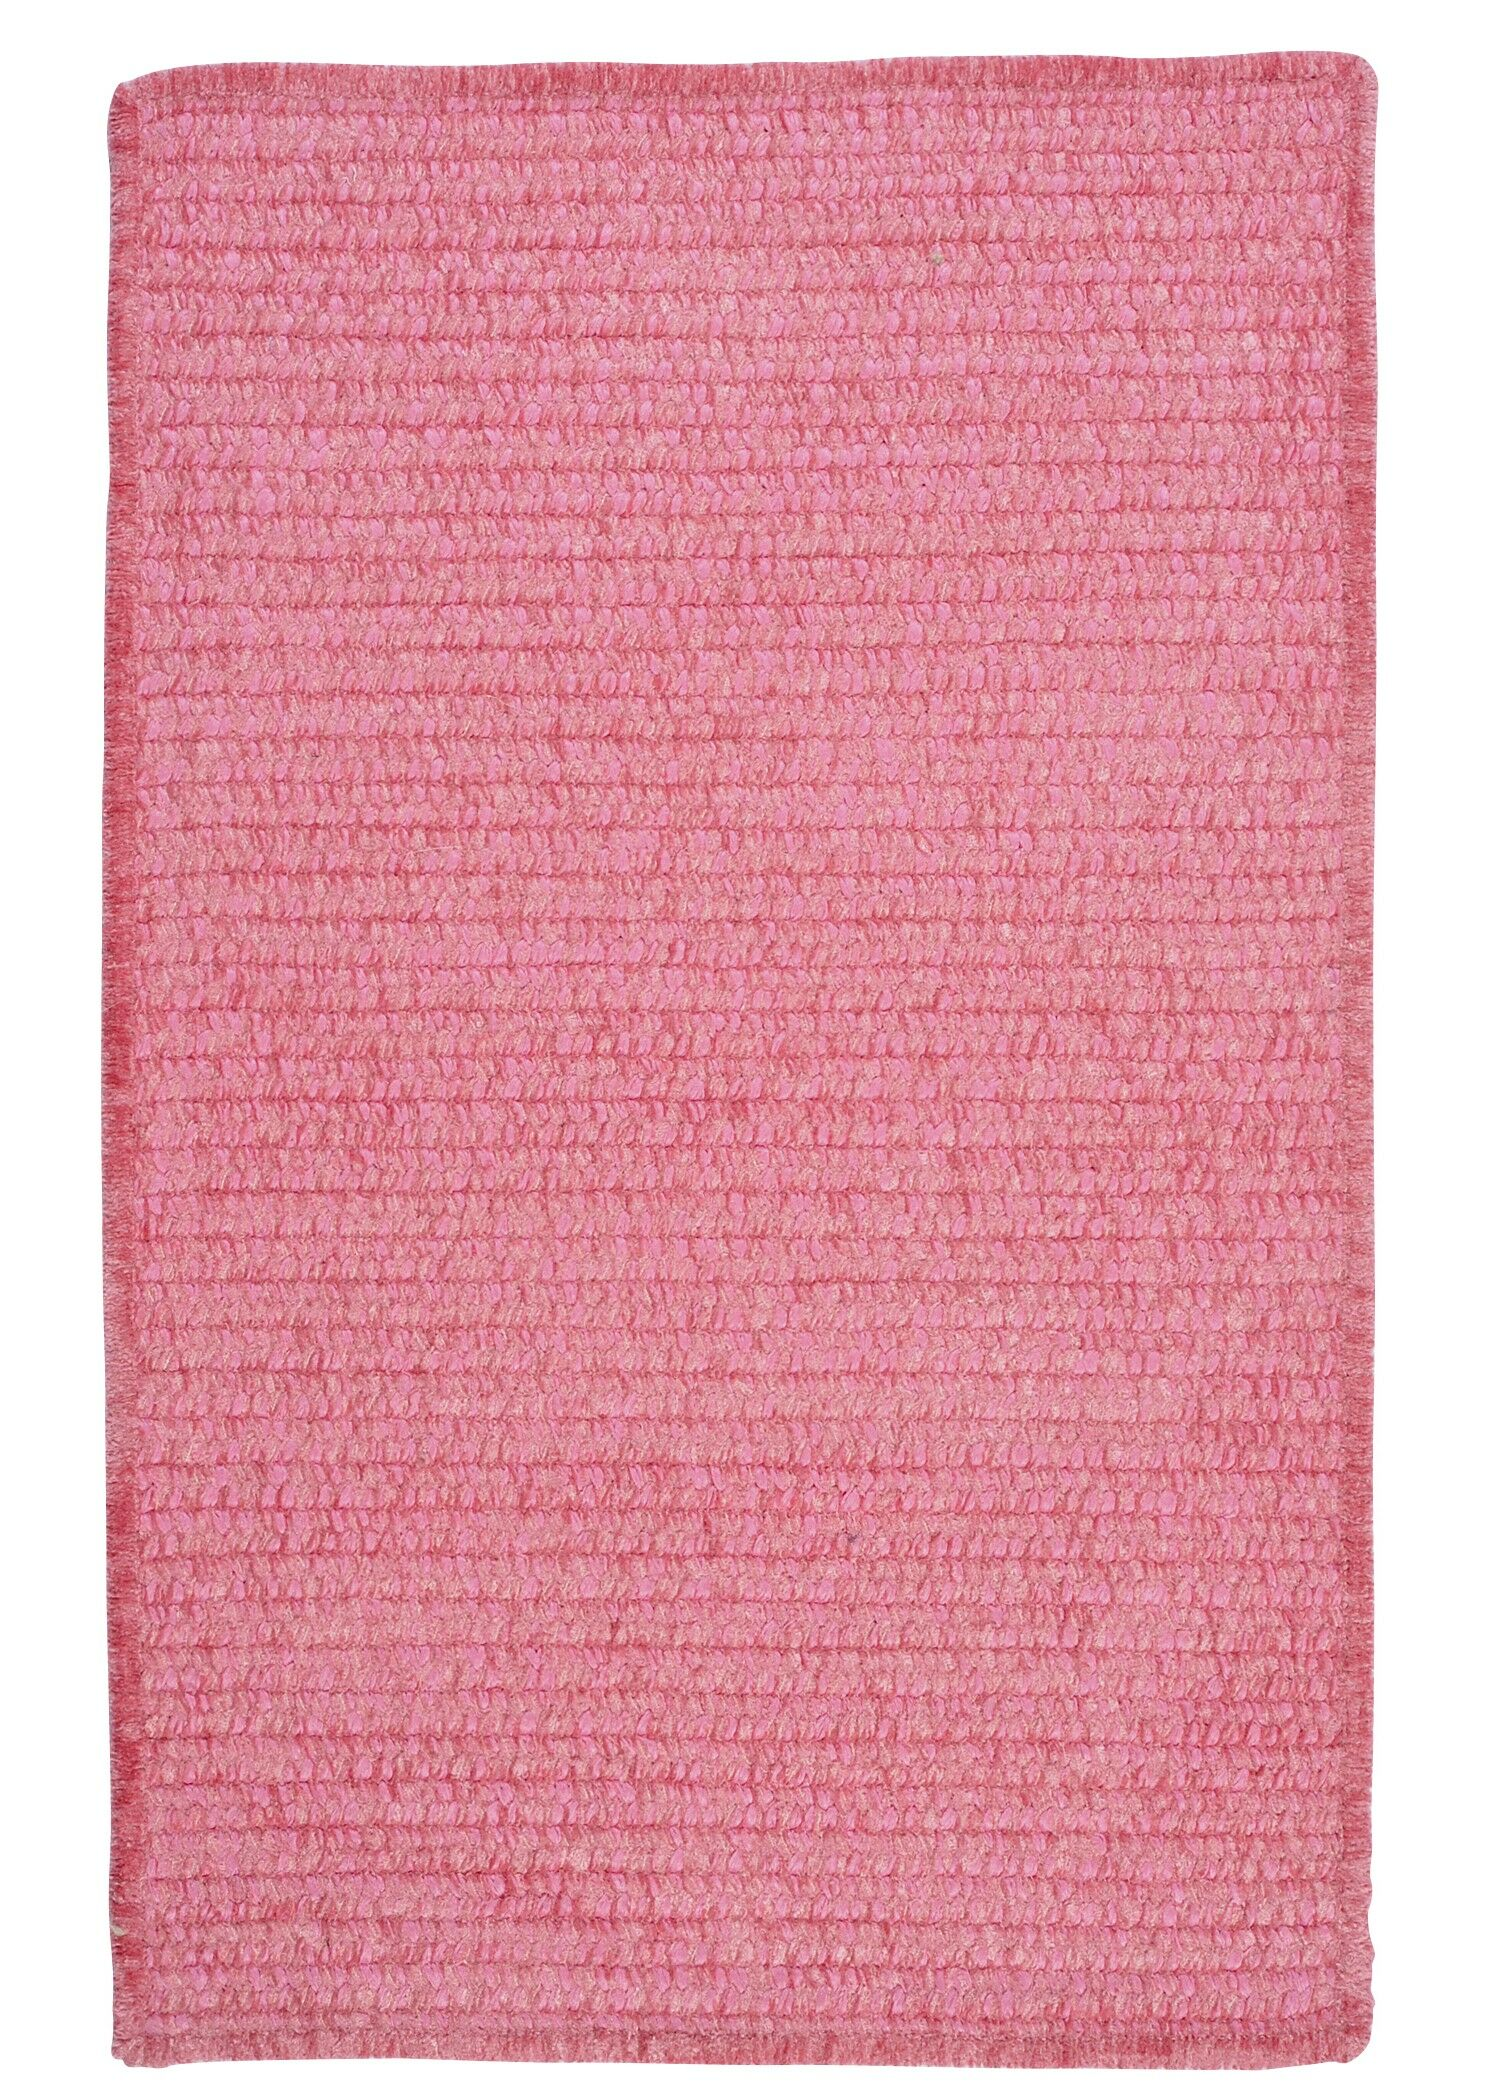 Gibbons Silken Rose Indoor/Outdoor Area Rug Rug Size: Rectangle 10' x 13'